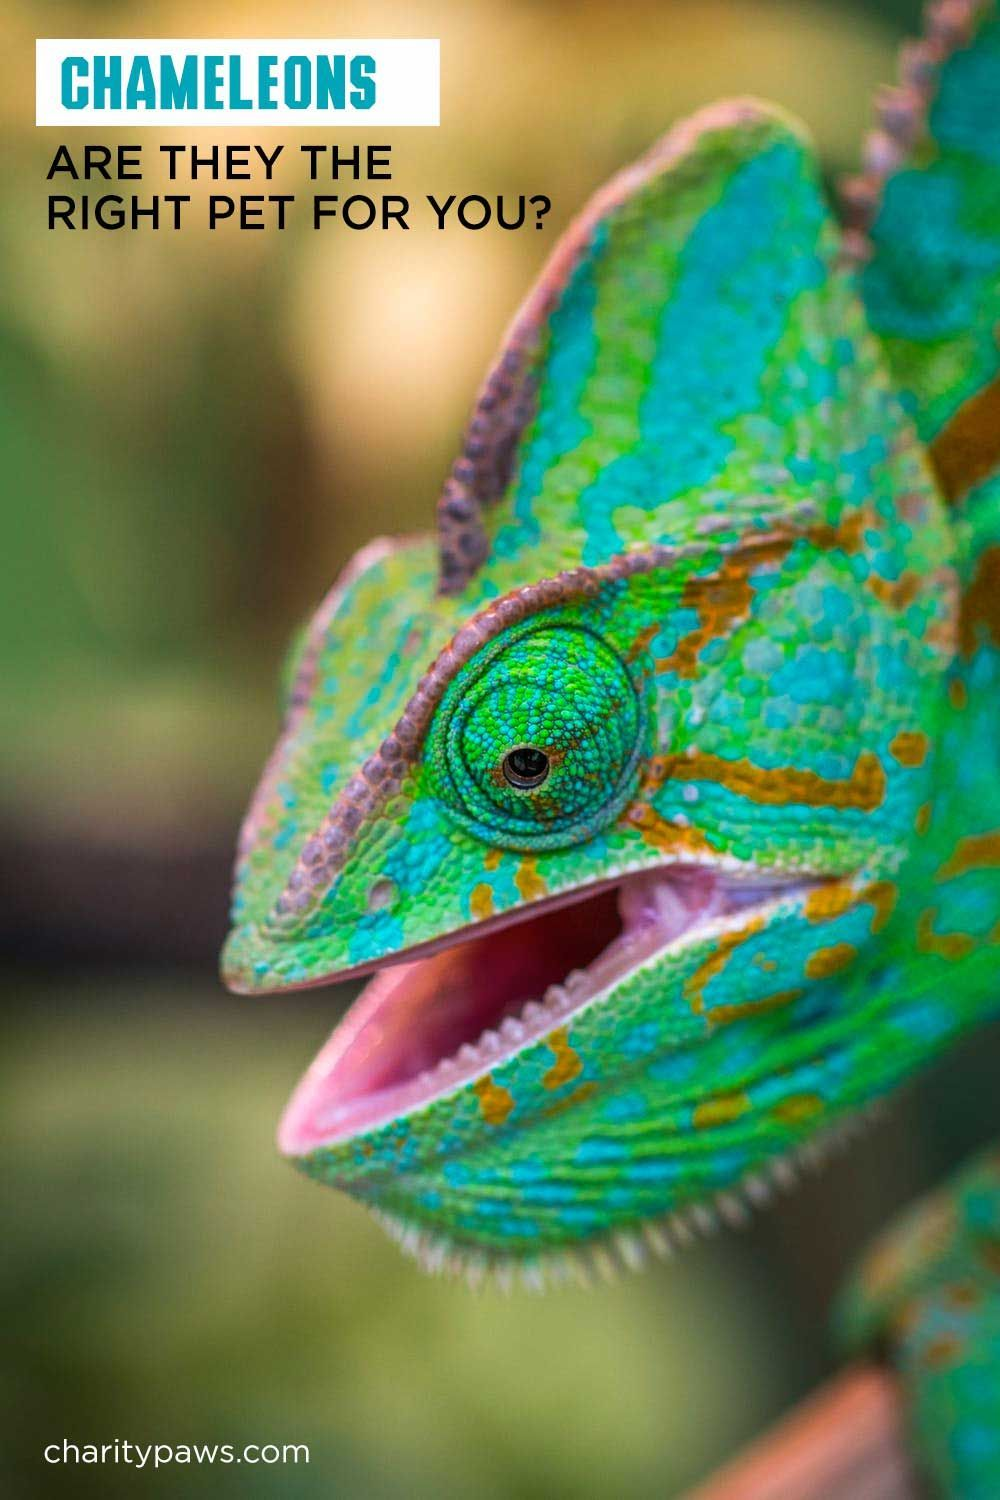 Wondering If A Chameleon Is A Good Pet? It Depends On You